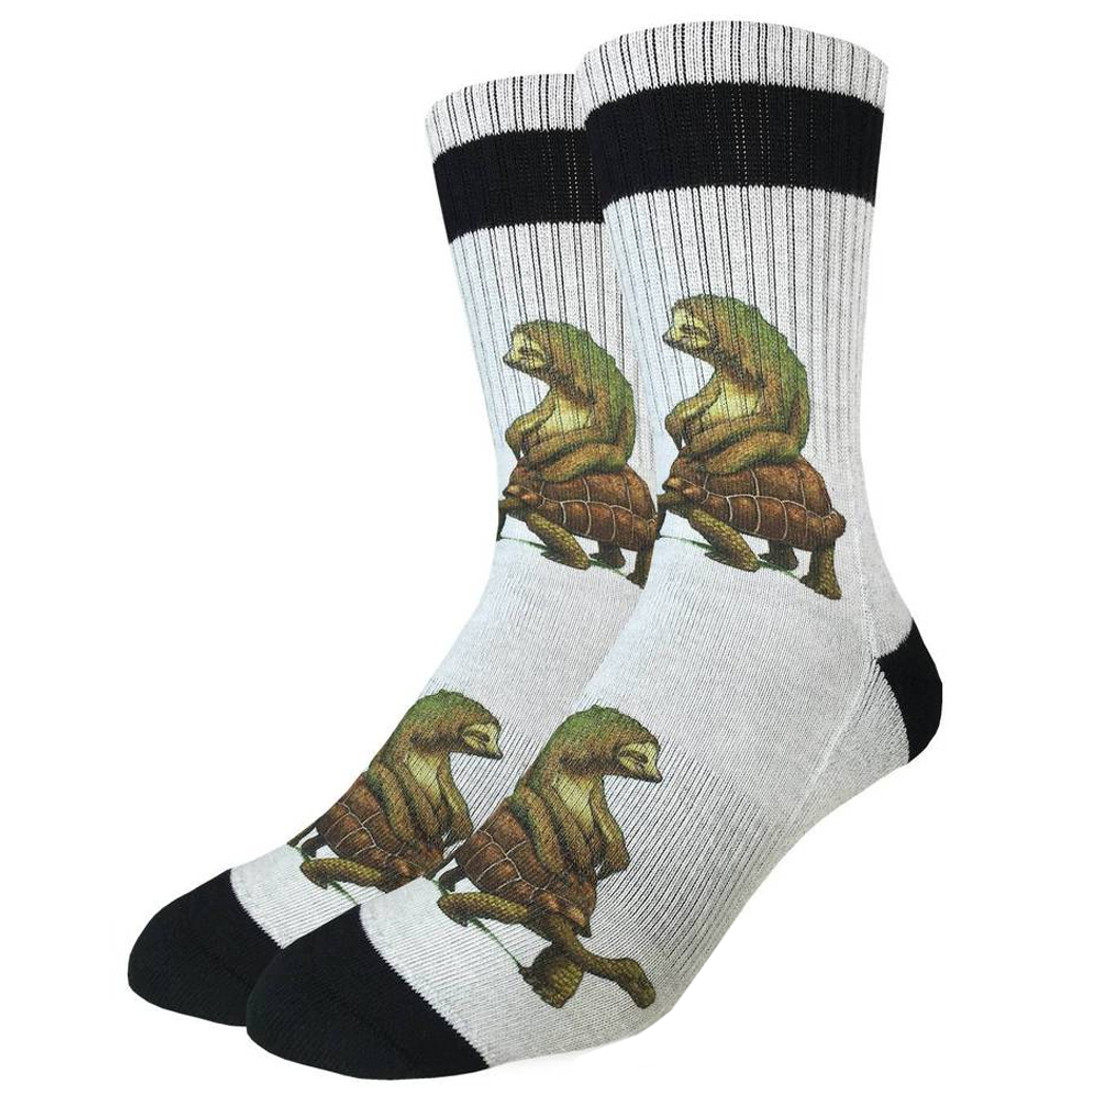 Tortoise and The Sloth Socks side view